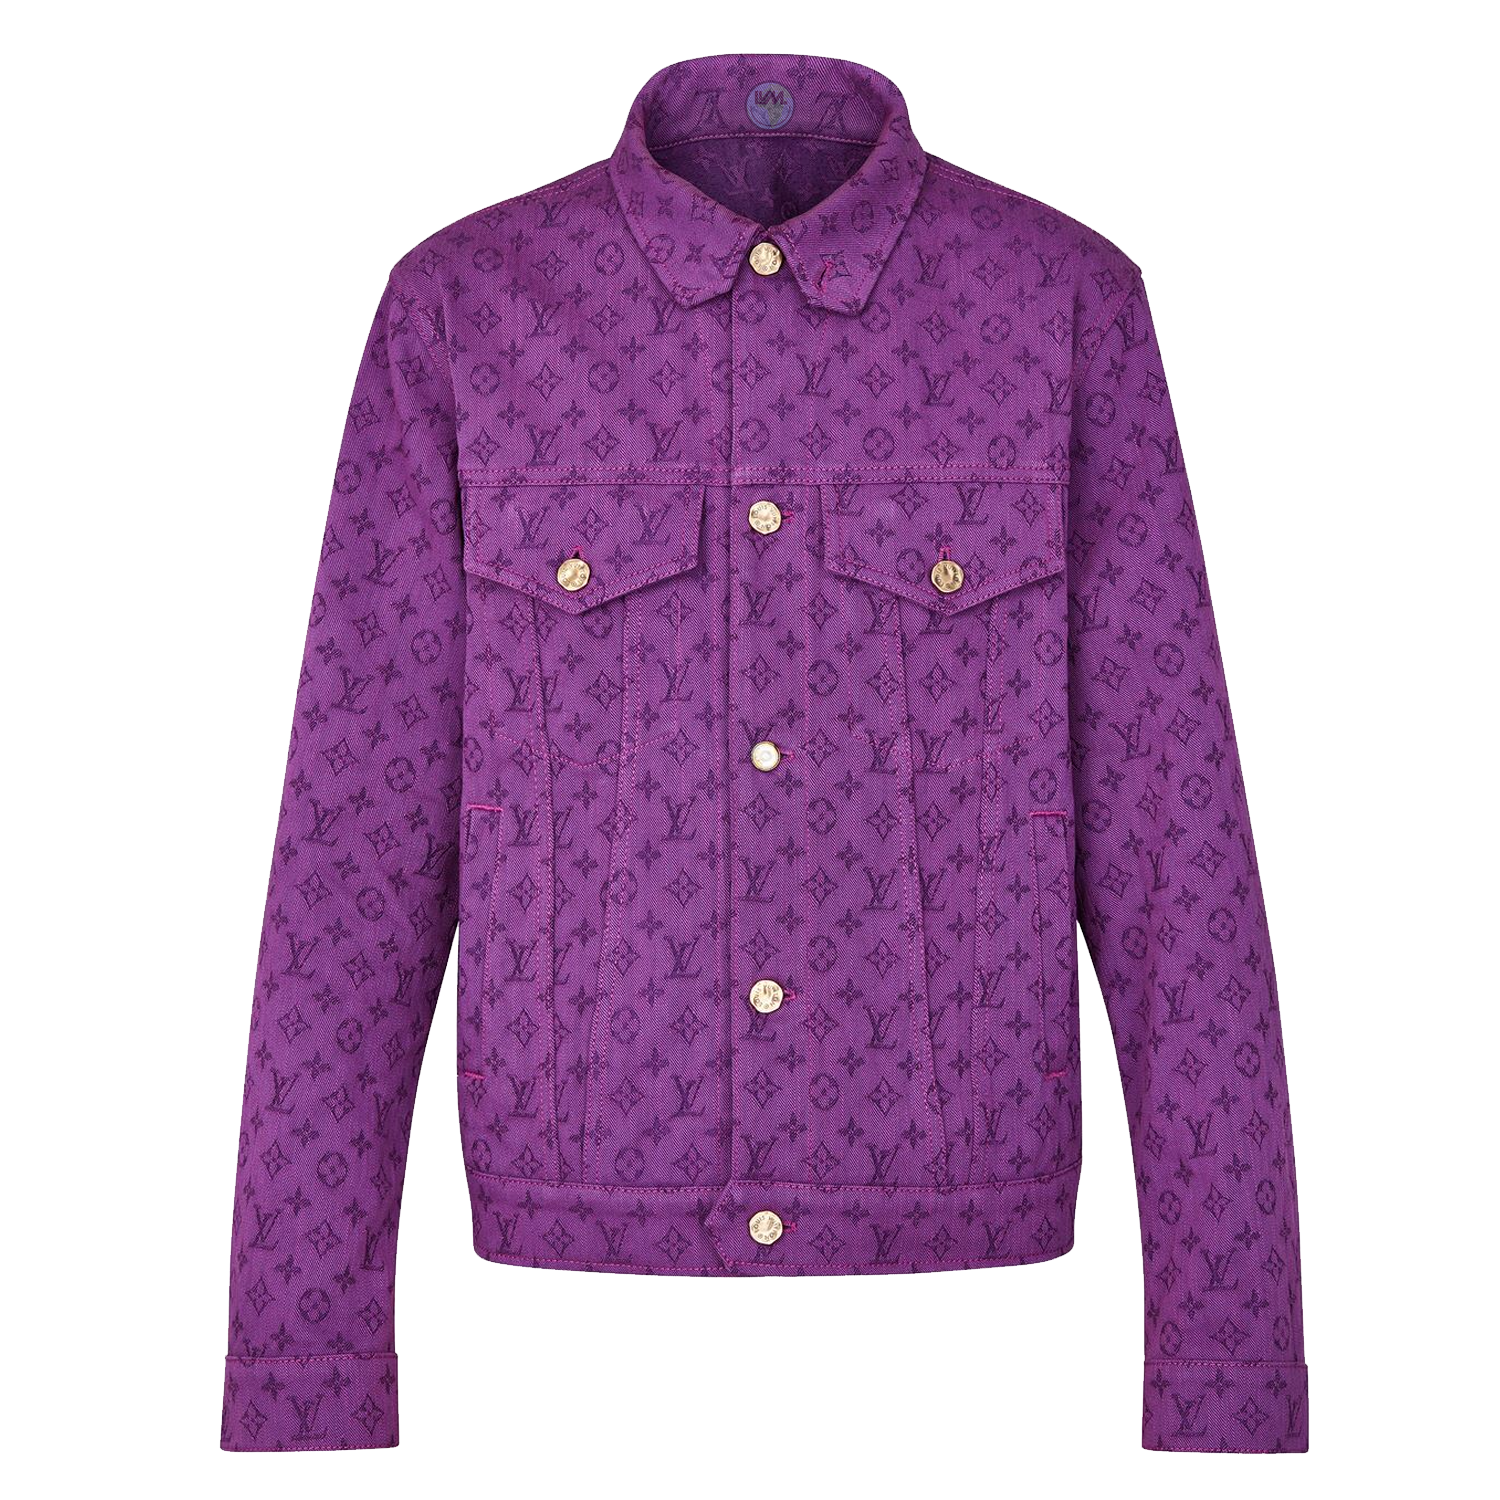 MONOGRAM DENIM JACKET - €1500 $19901A5D8IAUBERGINE